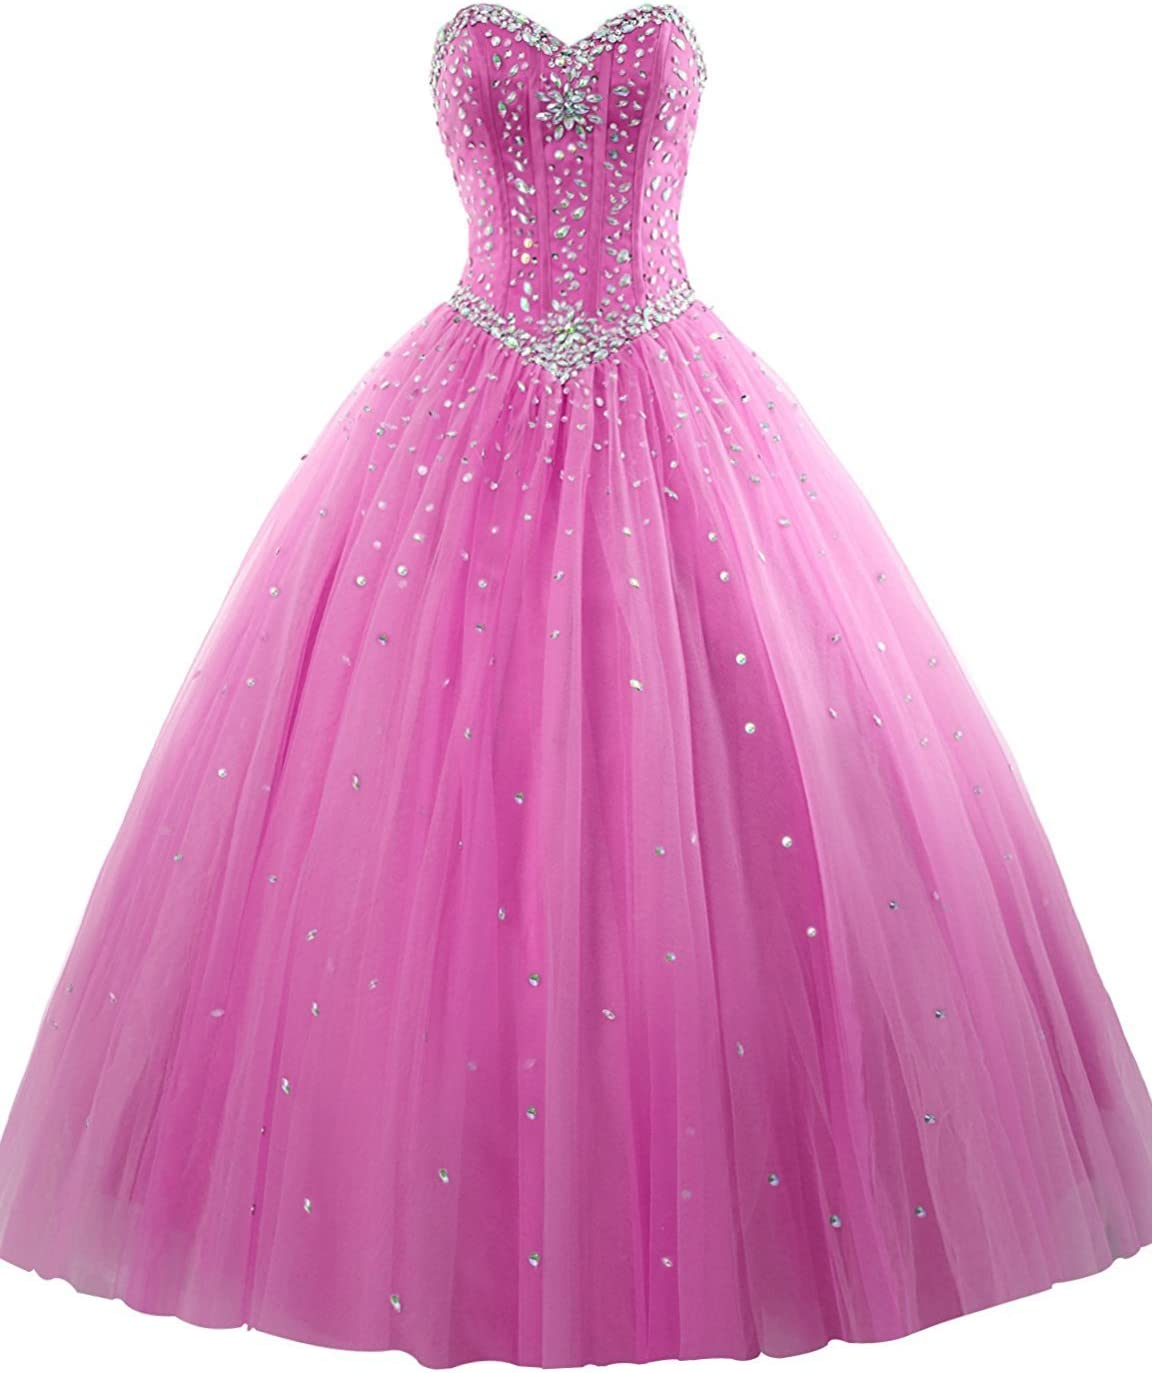 Womens Tulle Beaded Ball Gown Quinceanera Graduation Party Dresses Fuchsia US4